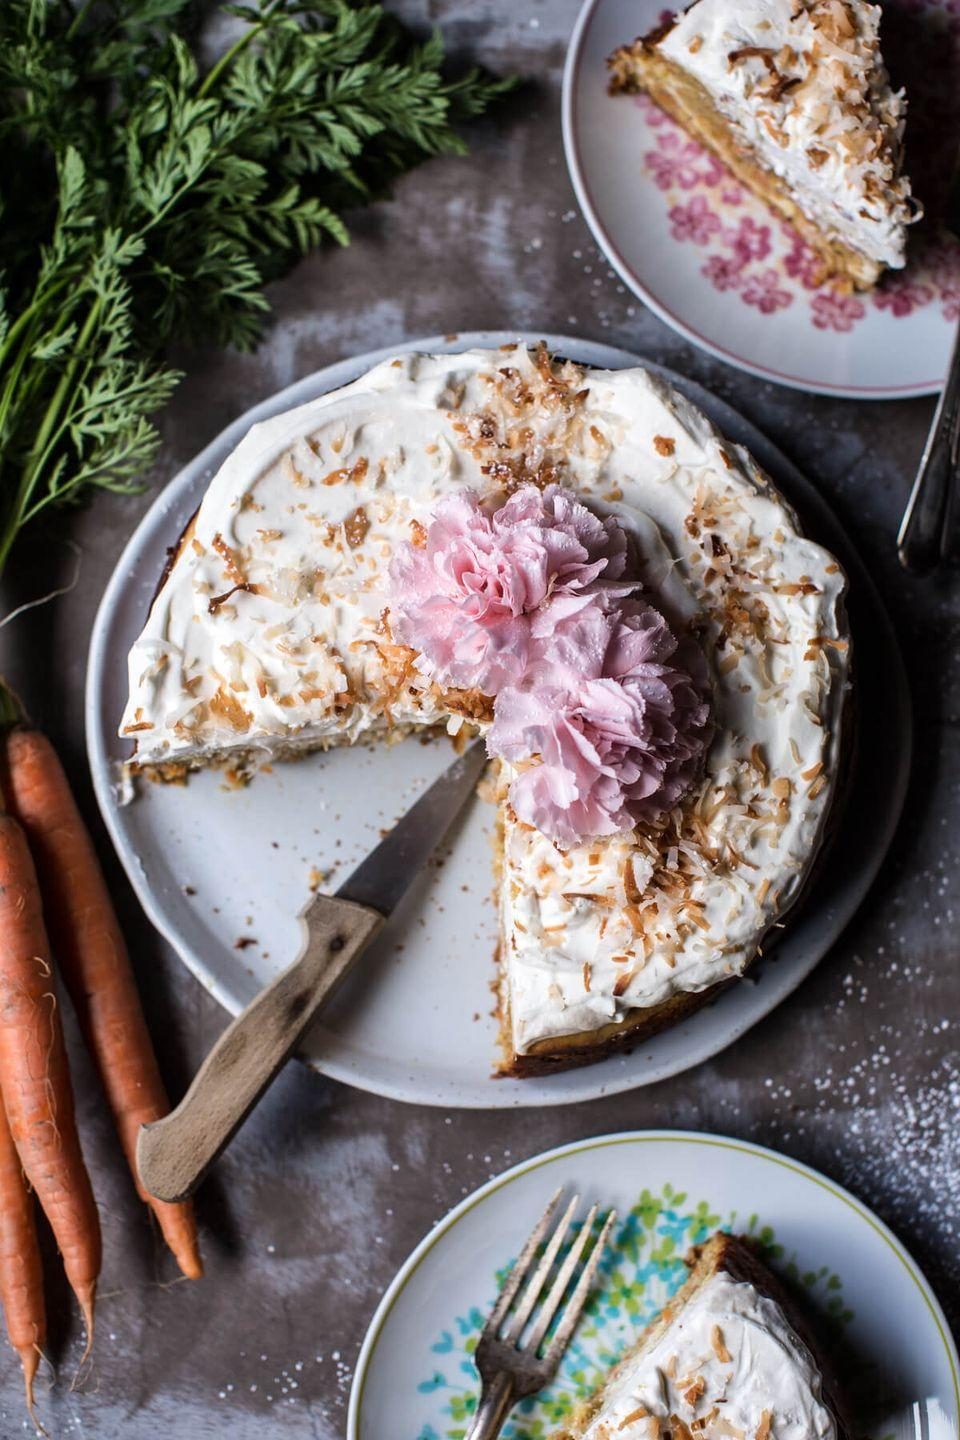 "<p>You'll get the best of both worlds — cheesecake and carrot cake — with this decadent dessert.</p><p><em><a href=""http://www.halfbakedharvest.com/coconut-carrot-cake-cheesecake/"" rel=""nofollow noopener"" target=""_blank"" data-ylk=""slk:Get the recipe from Half Baked Harvest »"" class=""link rapid-noclick-resp"">Get the recipe from Half Baked Harvest »</a></em> </p>"